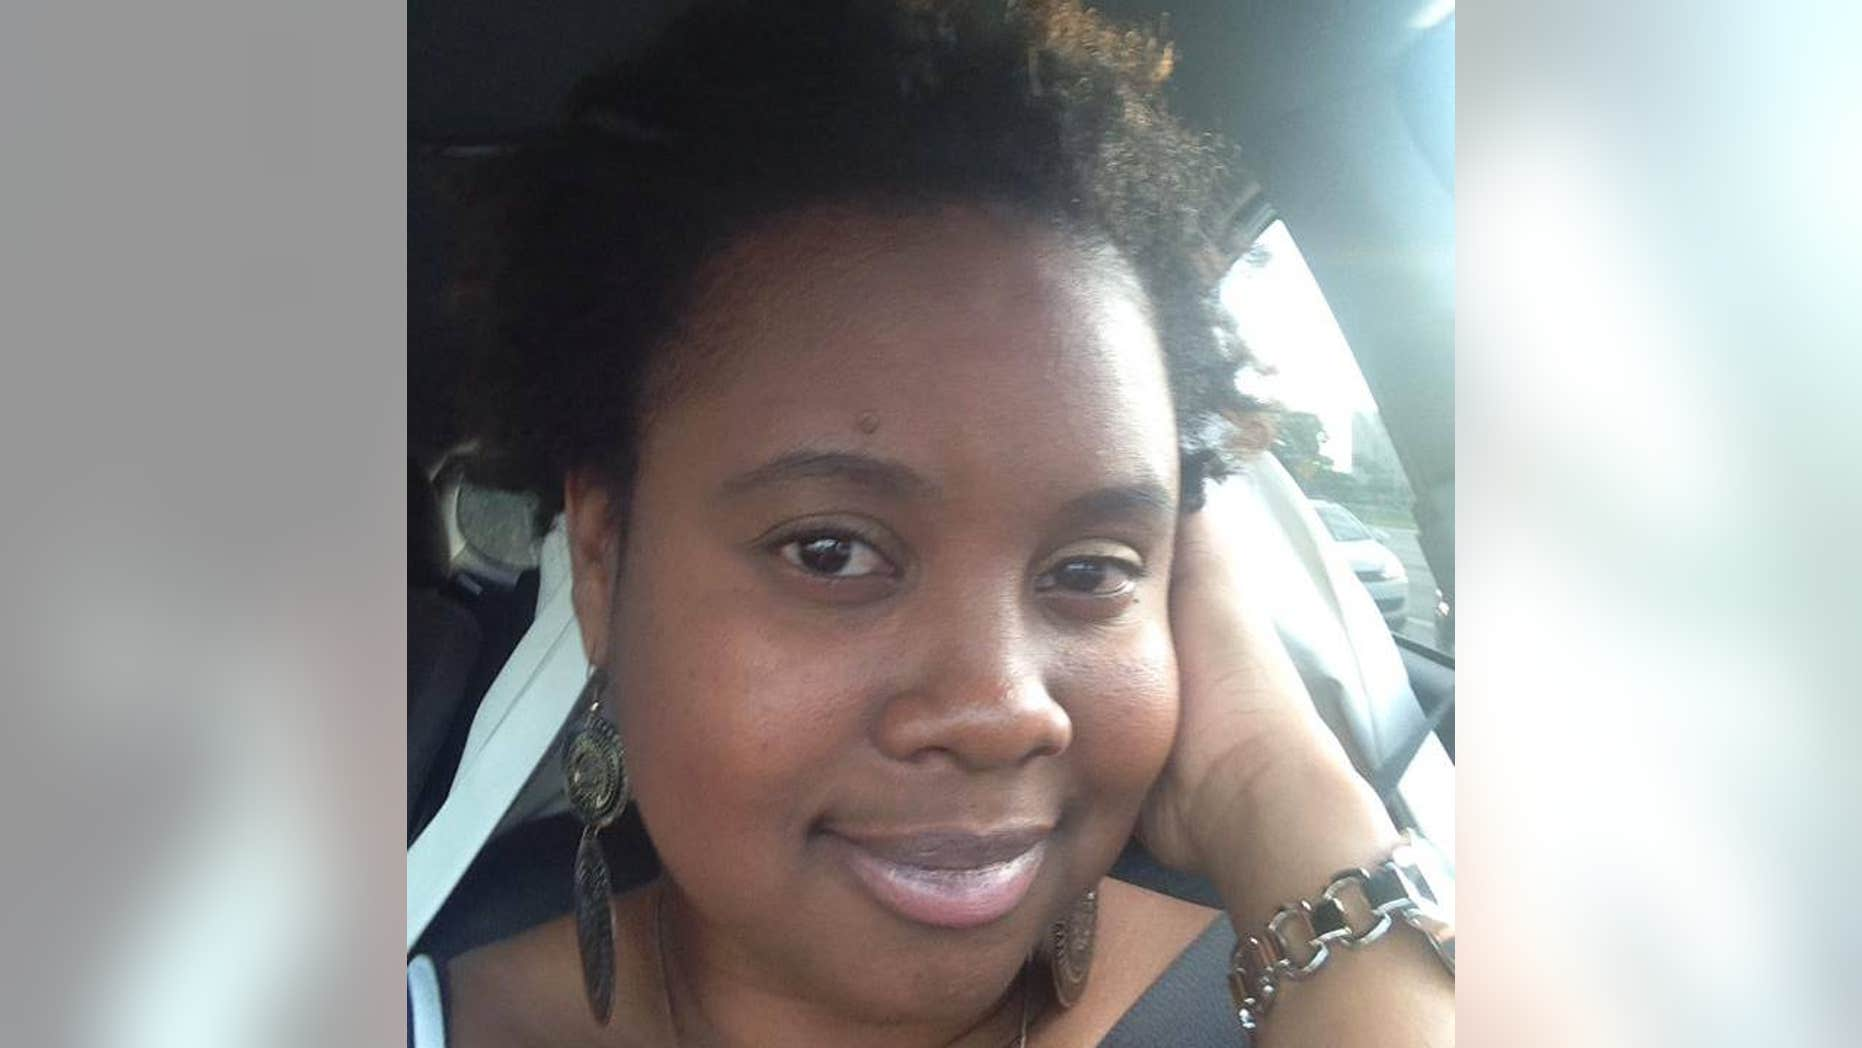 Makeva Jenkins, 33, was shot and killed early Thursday morning, just hours after posting on her Facebook page about her success. (Facebook)